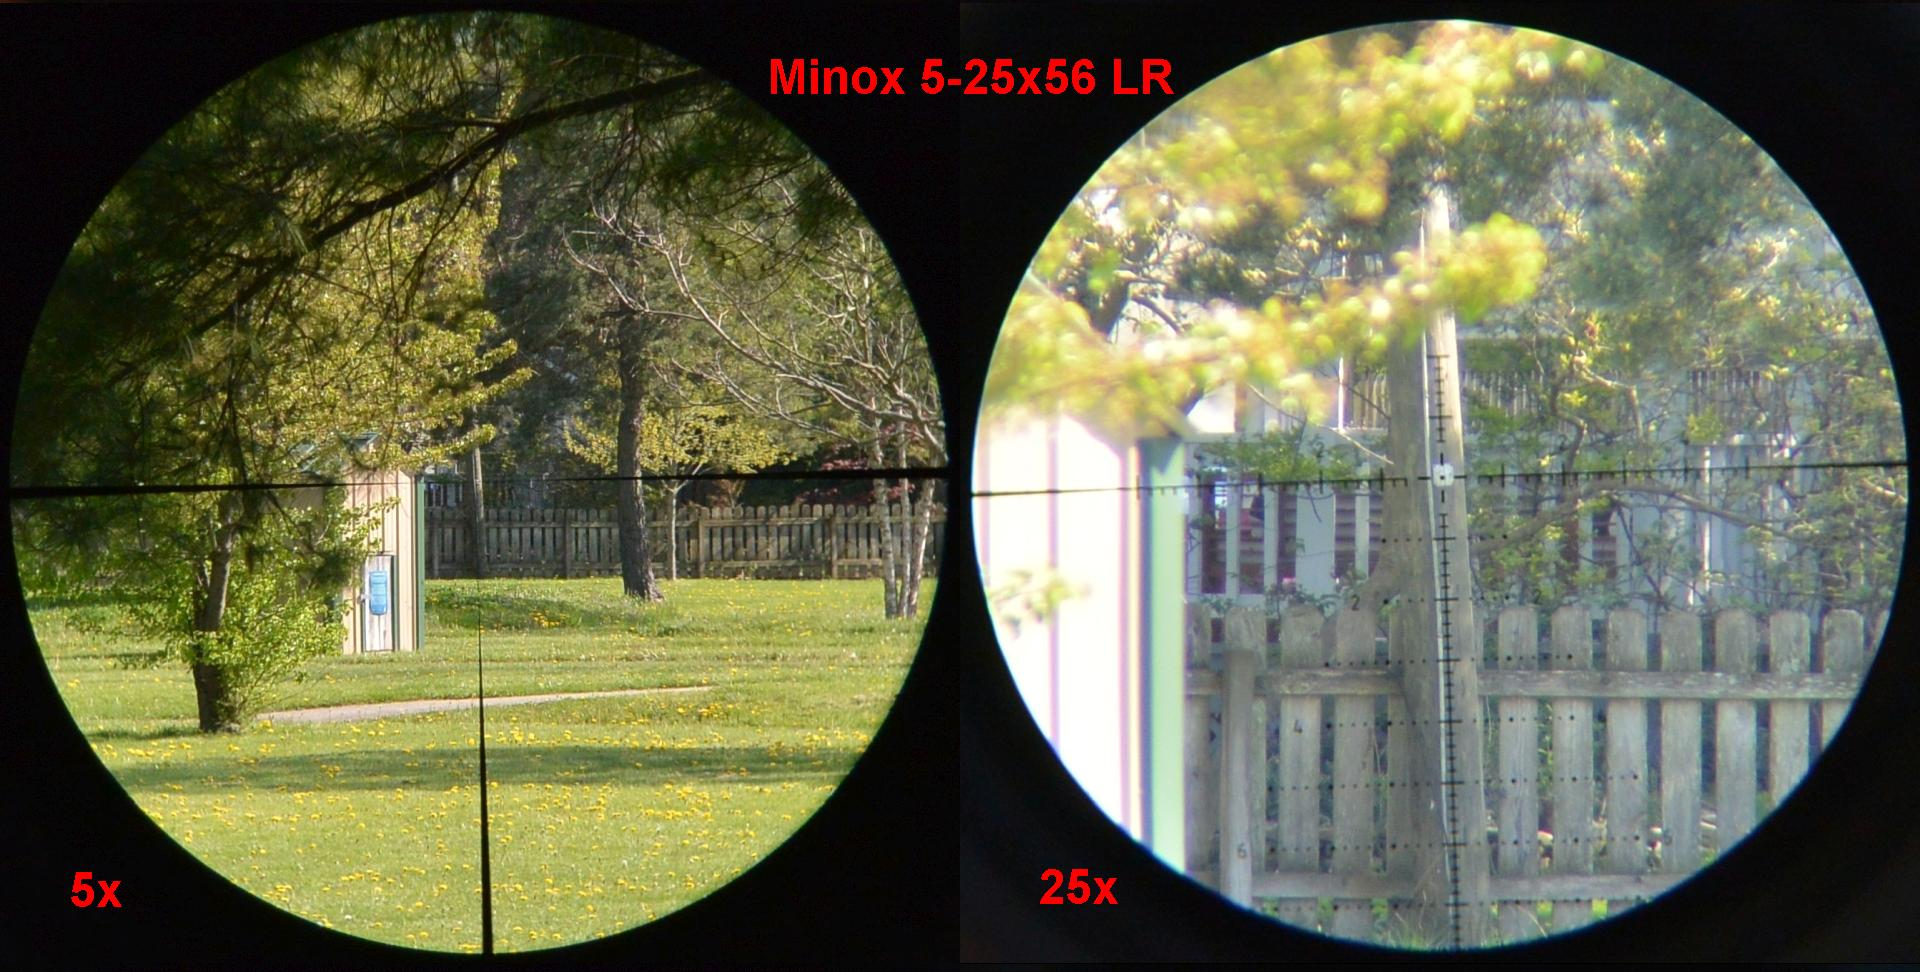 LR reticle in the Minox 5-25x56 LR  on low and high powers